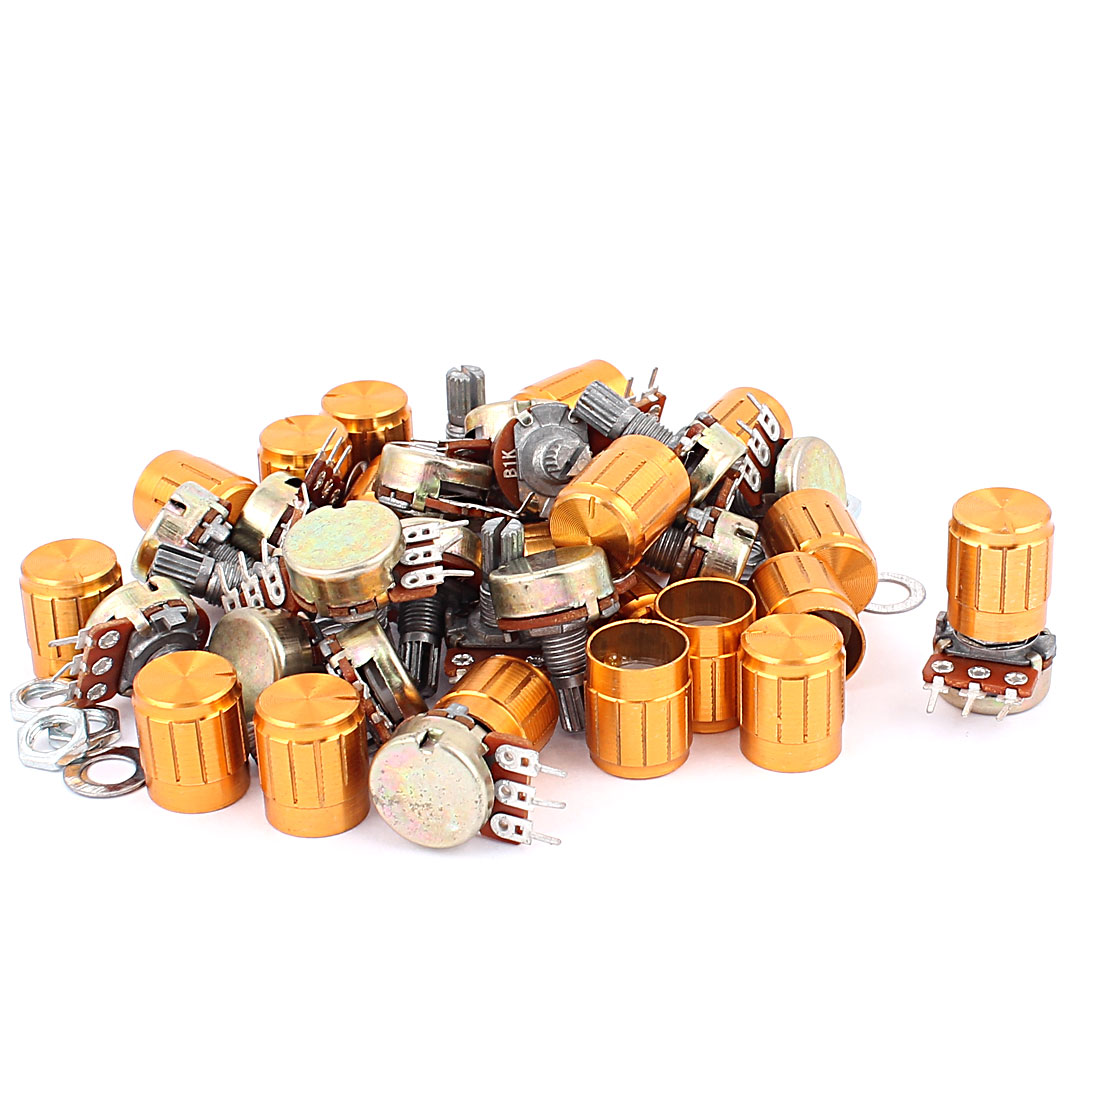 20Pcs WH148 1K Ohm 15mm Rotating Shaft Linear Taper Rotary Potentiometer